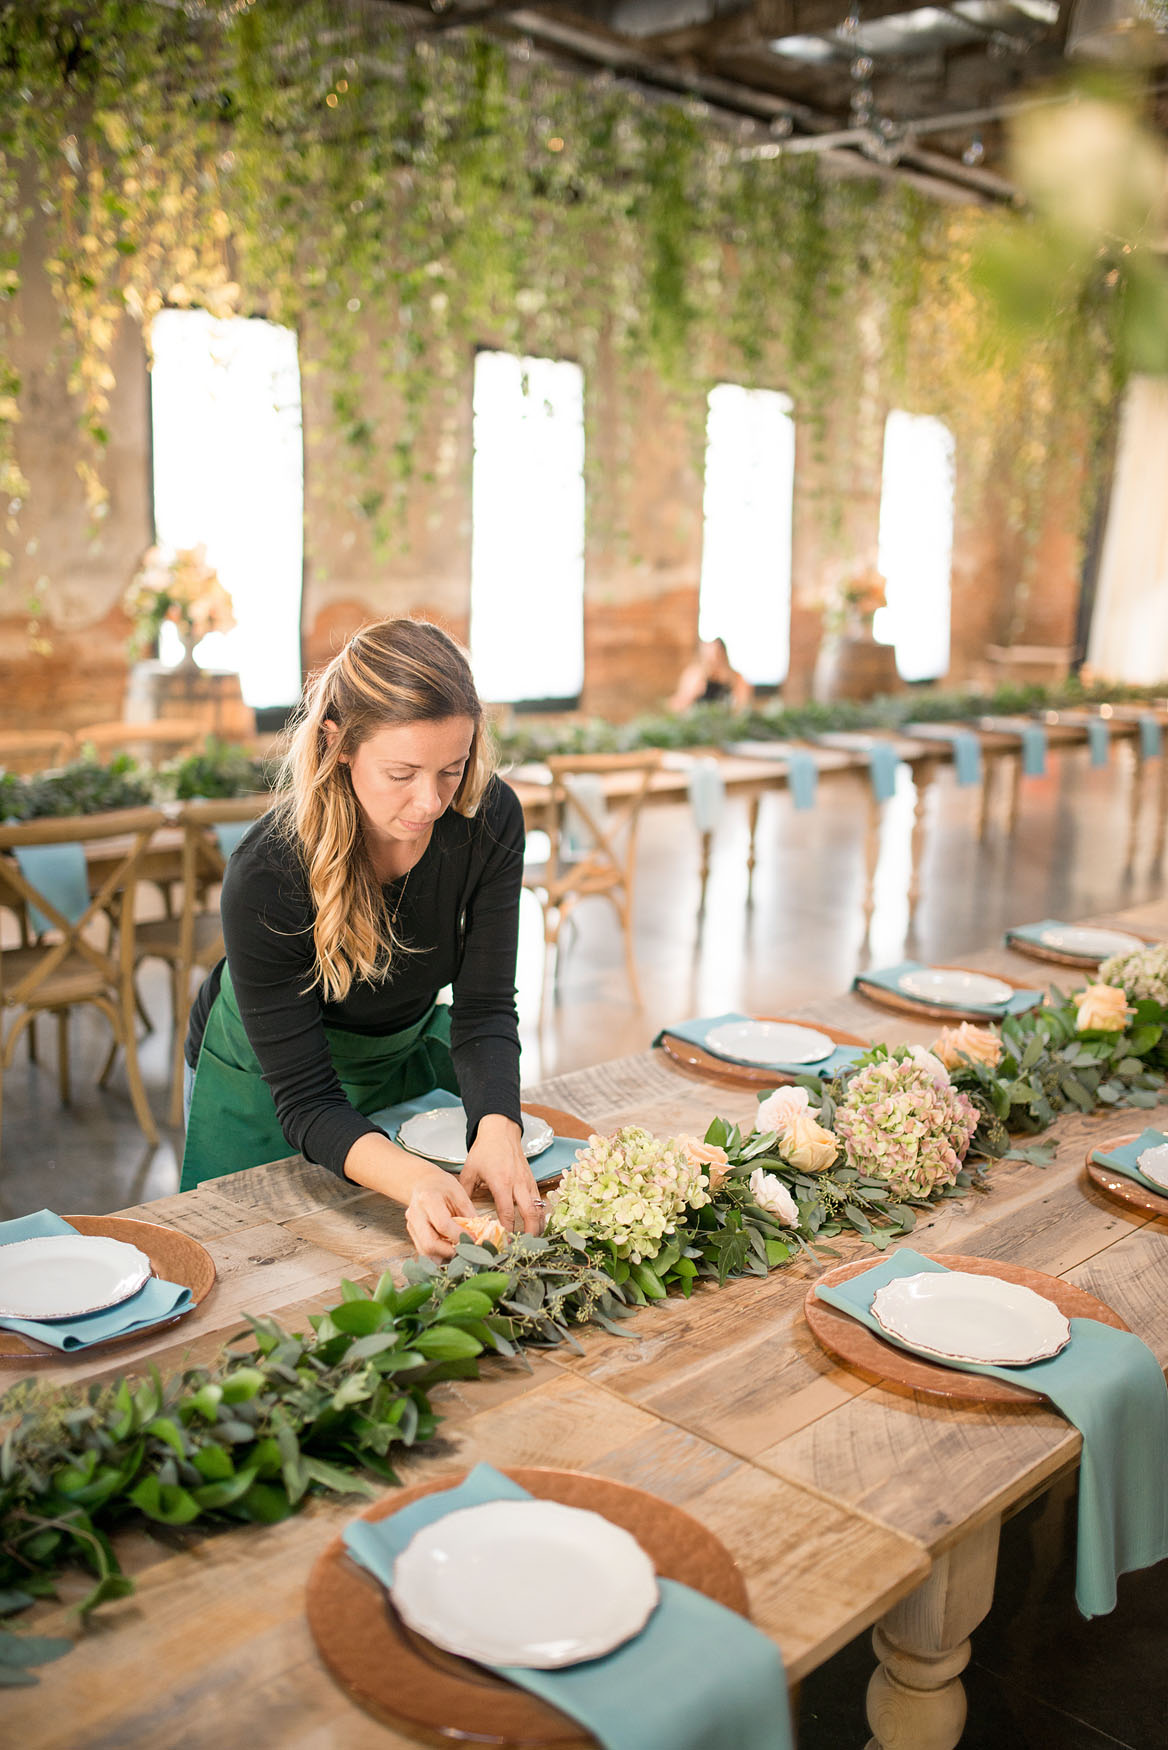 Diana Venditto arranging floral centerpiece